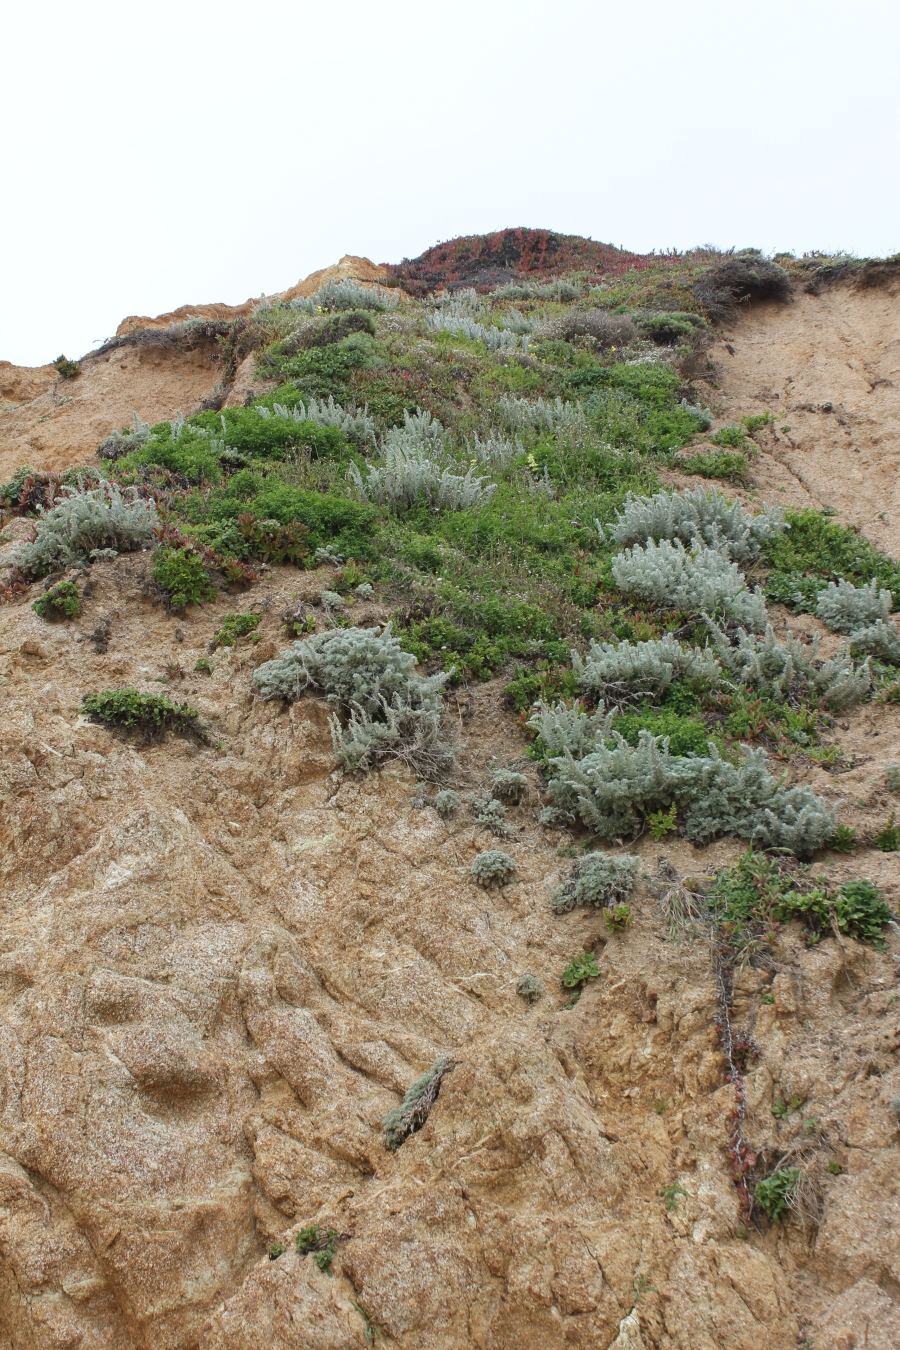 Plants growing on the side of the cliff